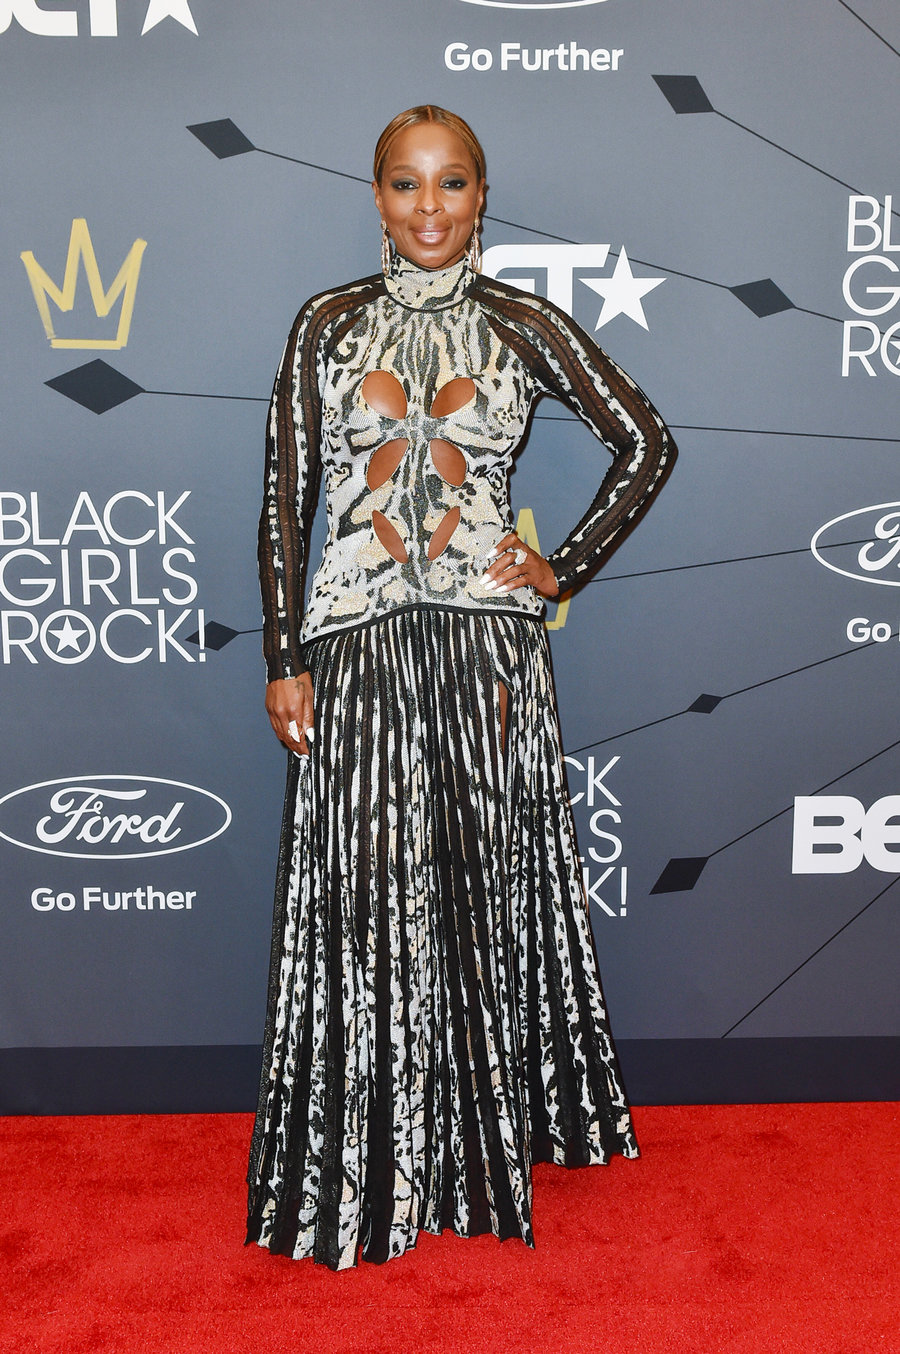 mary-j-blige-black-girls-rock-red-carpet-2018-billboard-1240